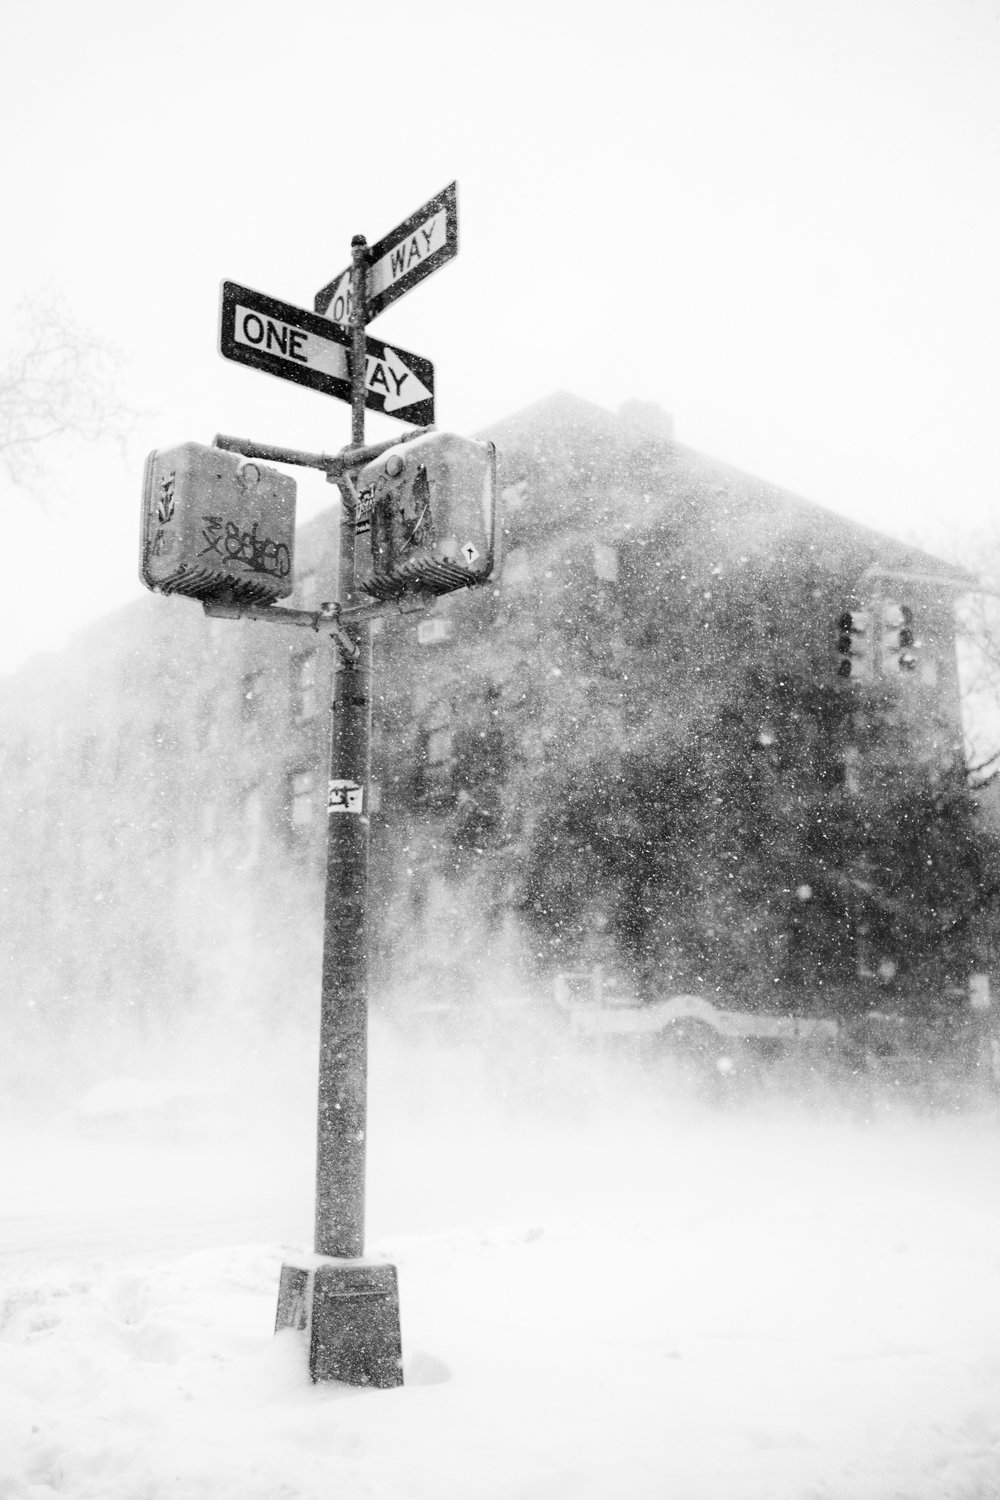 """White out"" January 4, 2018. Carroll Gardens, Brooklyn Fujifilm X Pro2, 23mm, f2.5 , 1/1400 sec, ISO 200   2018 began with a boom, er, bomb. On January 4, a winter storm called a ""bomb cyclone"" (aka ""bombogenesis"", aka ""winter hurricane"") hit New York and made for some apocalyptic snowstorm photos. Tip your seamless delivery guys, people."